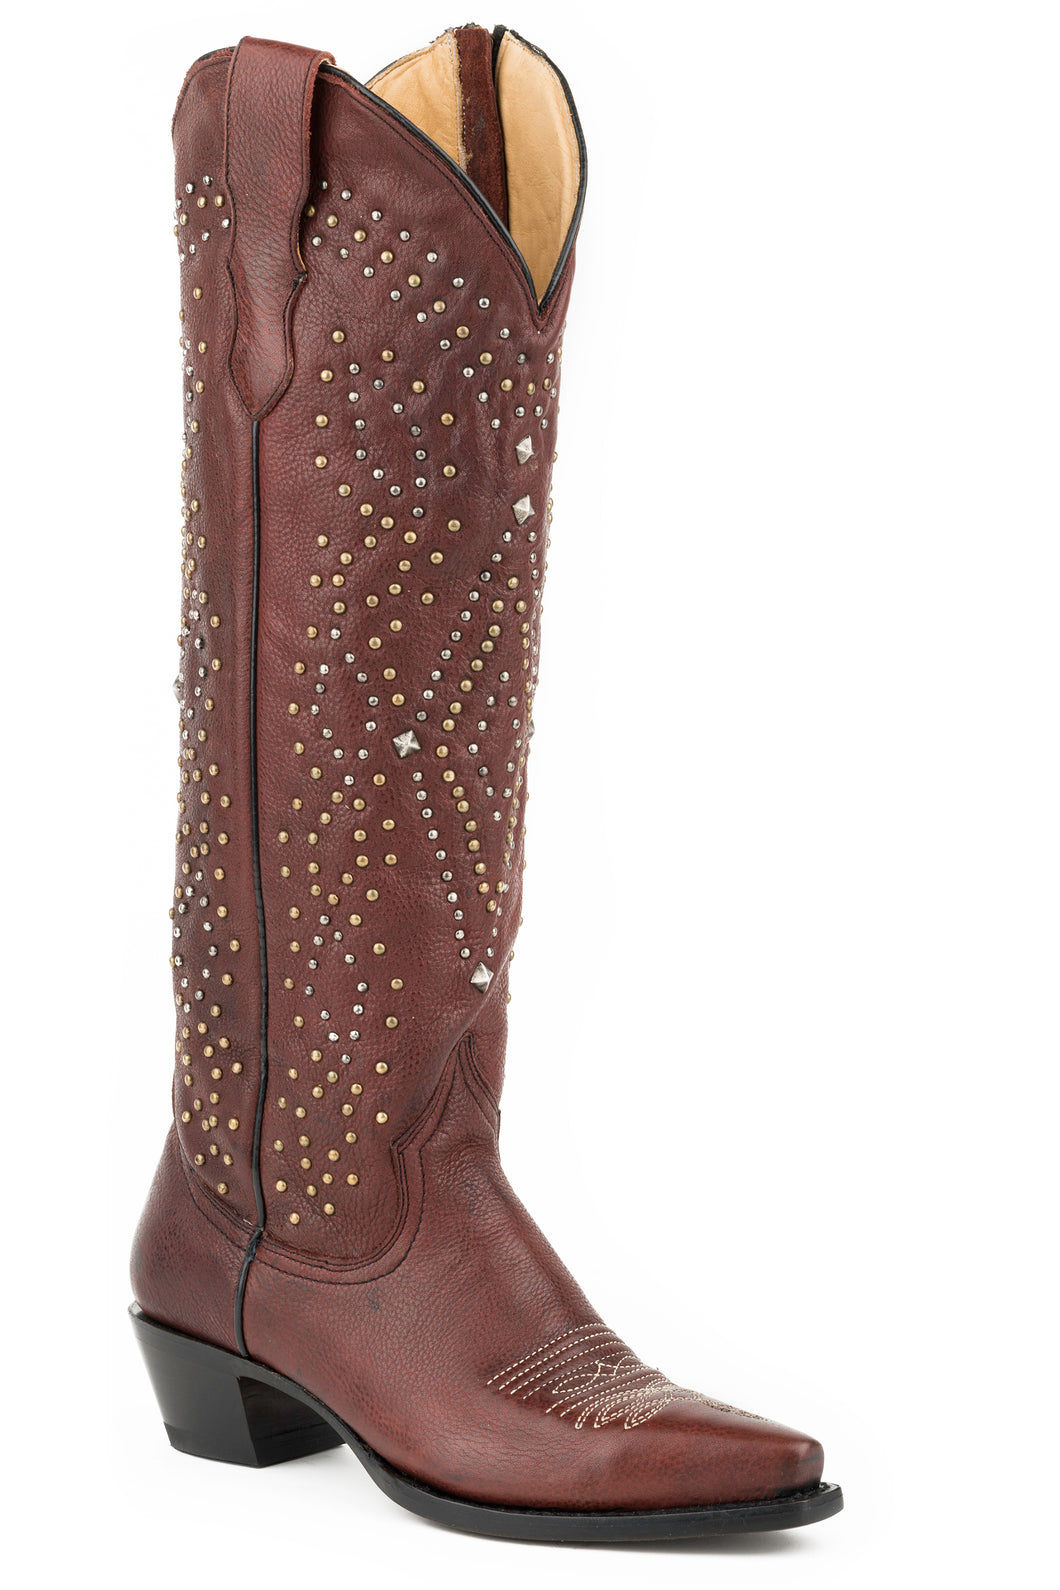 Crystal Boot Womens Boot Redishbrn Vmp17